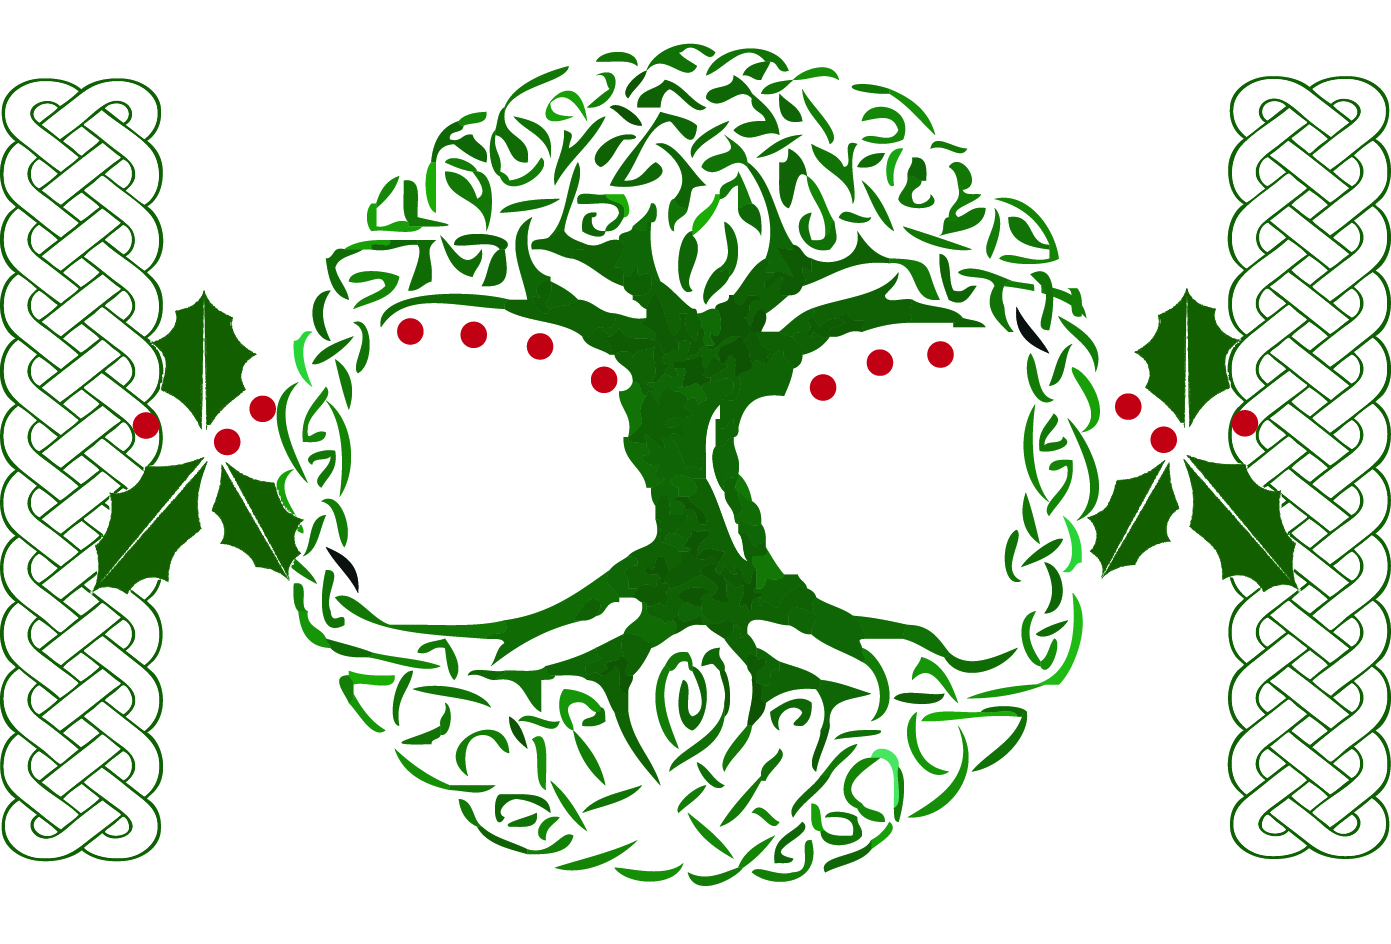 Celtic Christmas.Events Bothwell Arts Center